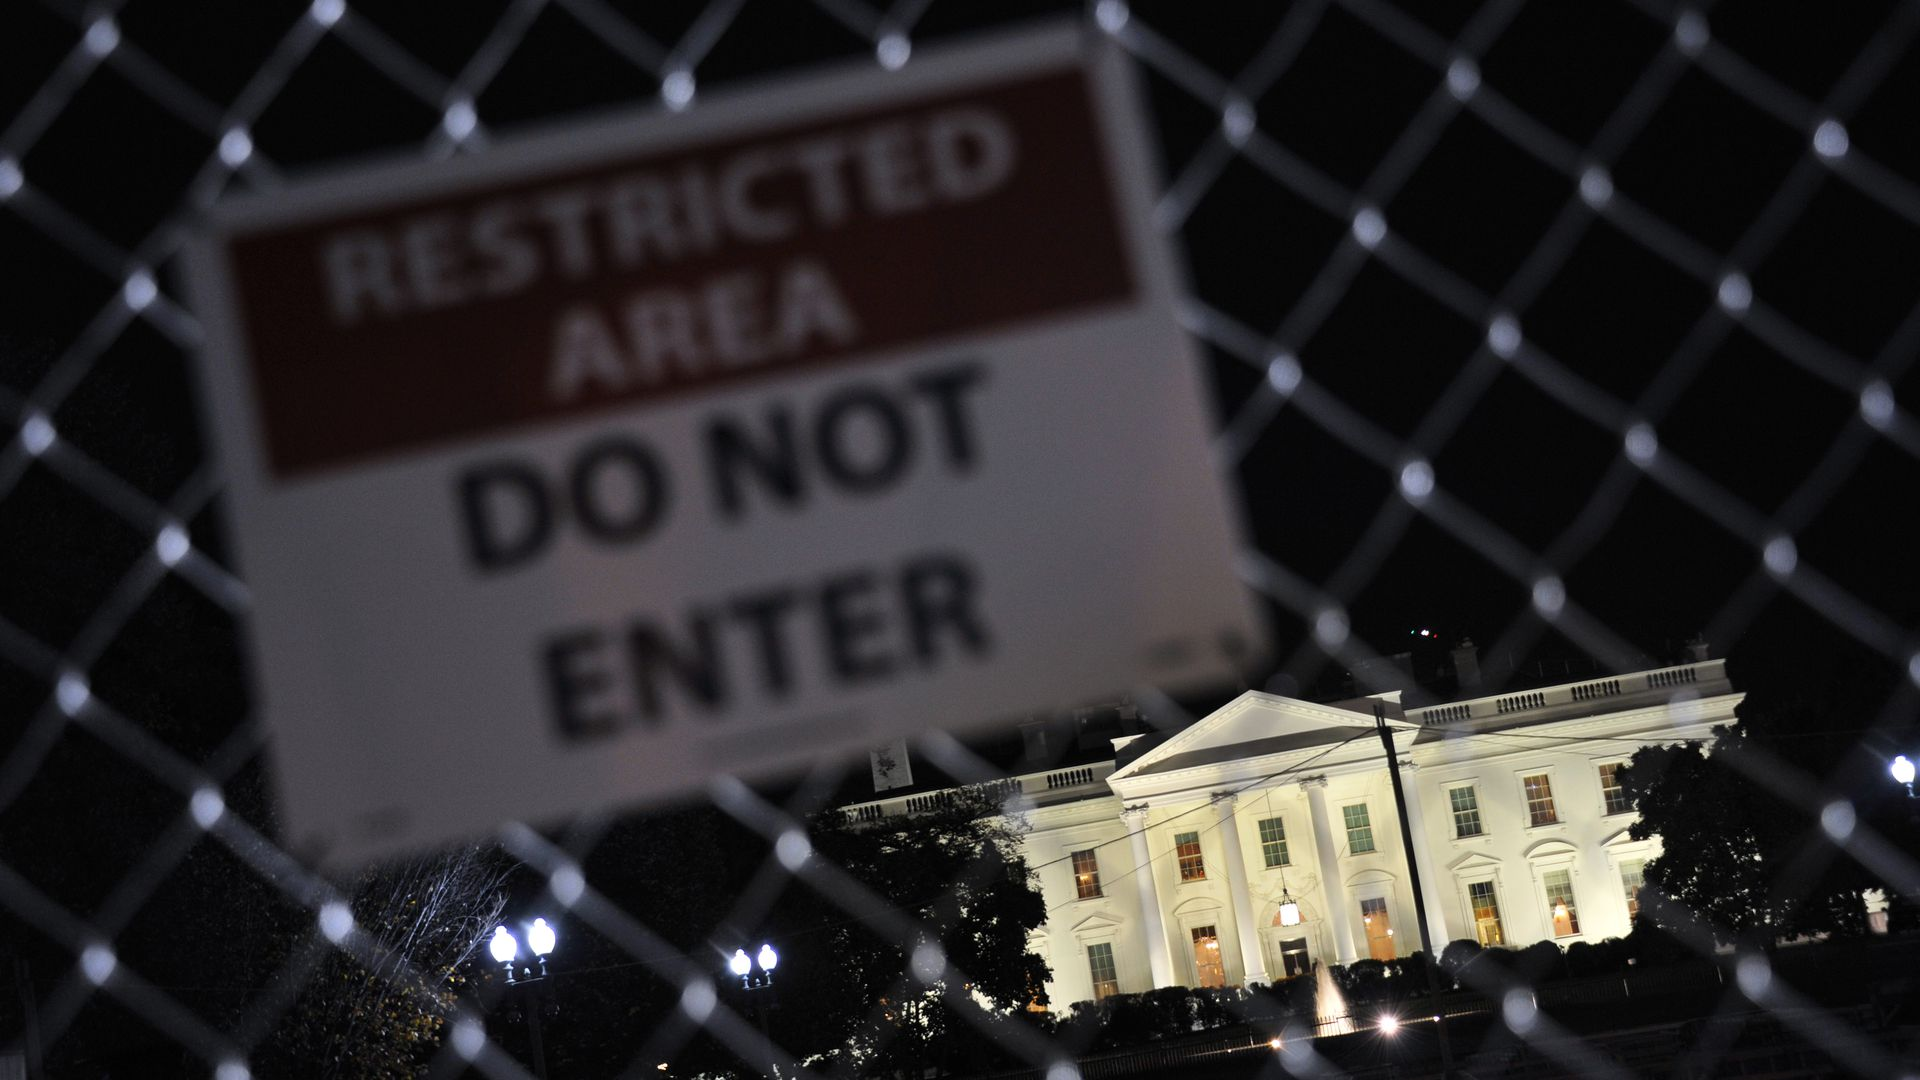 White House with a restricted area sign